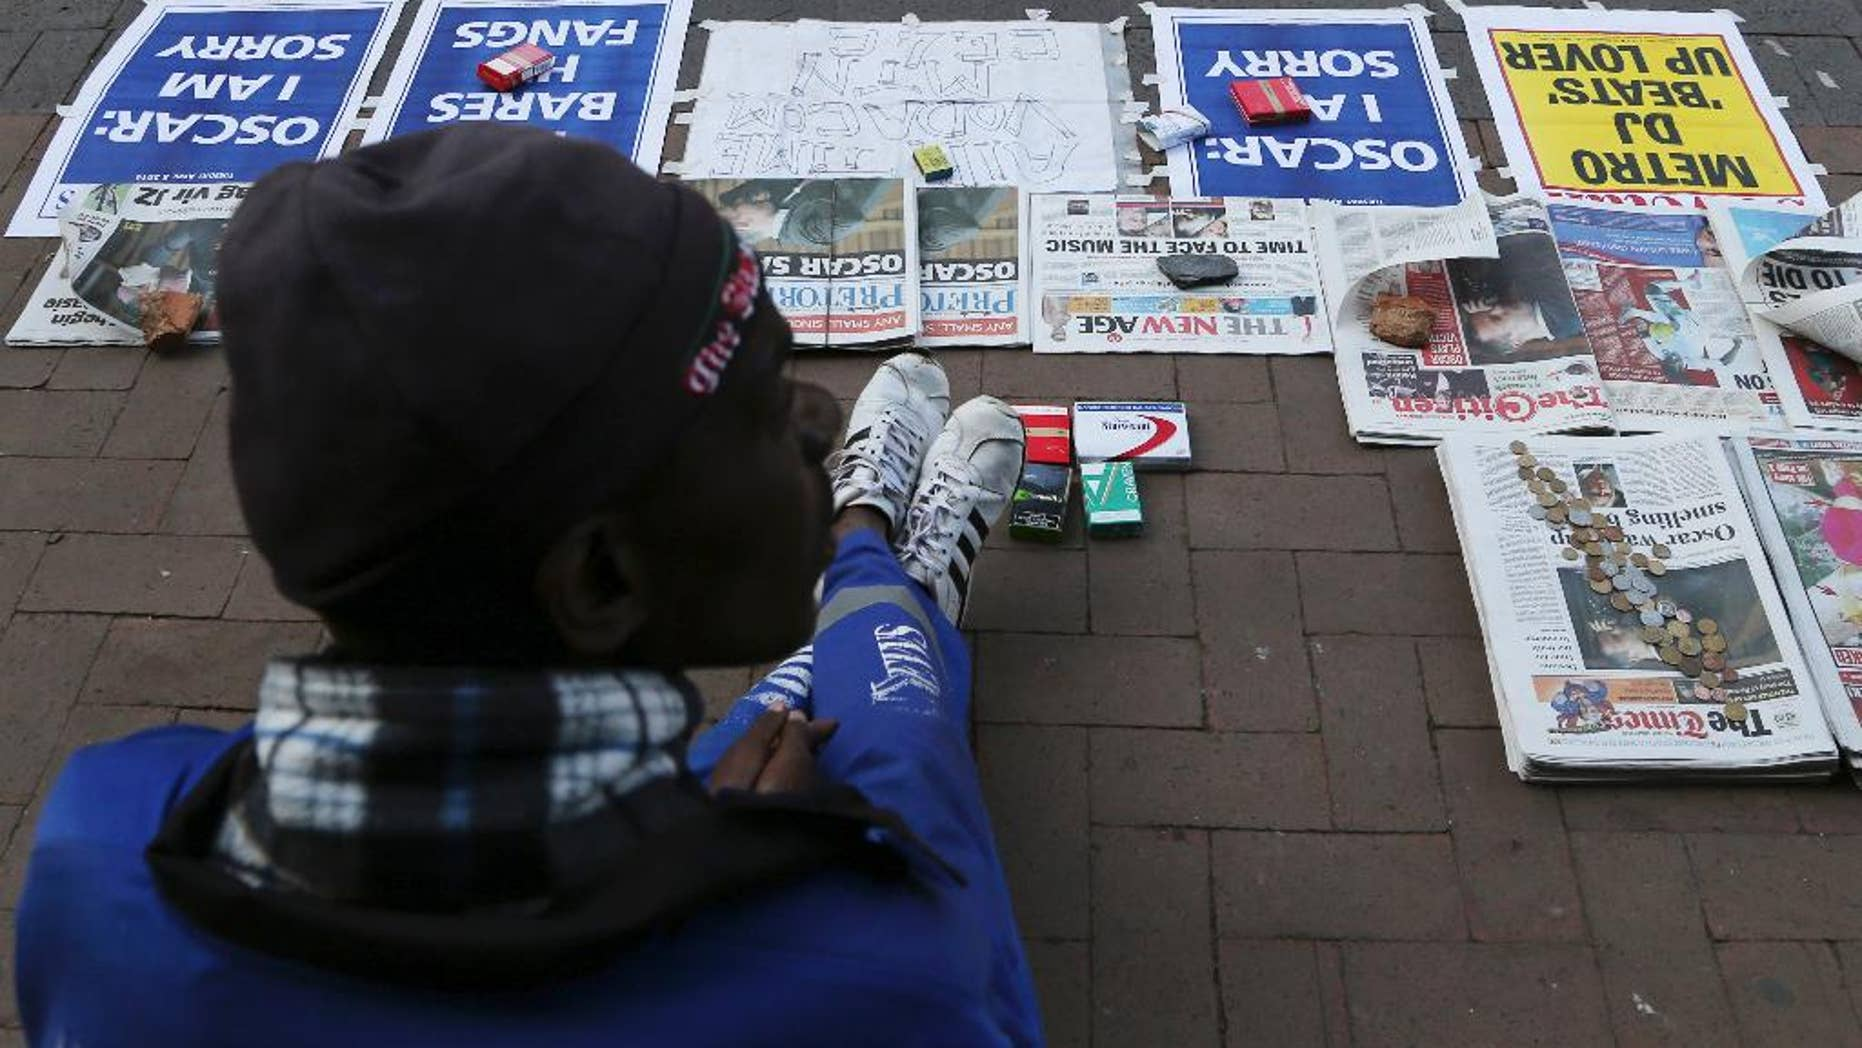 A vendor sells newspaper with headlines on Oscar Pistorius ouside the high court in Pretoria, South Africa, Tuesday, April 8, 2014. Pistorius, who is charged with murder for the shooting death of his girlfriend, Reeva Steenkamp, on Valentines Day in 2013, was testifying for a second day at his murder trial Tuesday, answering questions from his defense lawyer. (AP Photo/Themba Hadebe)